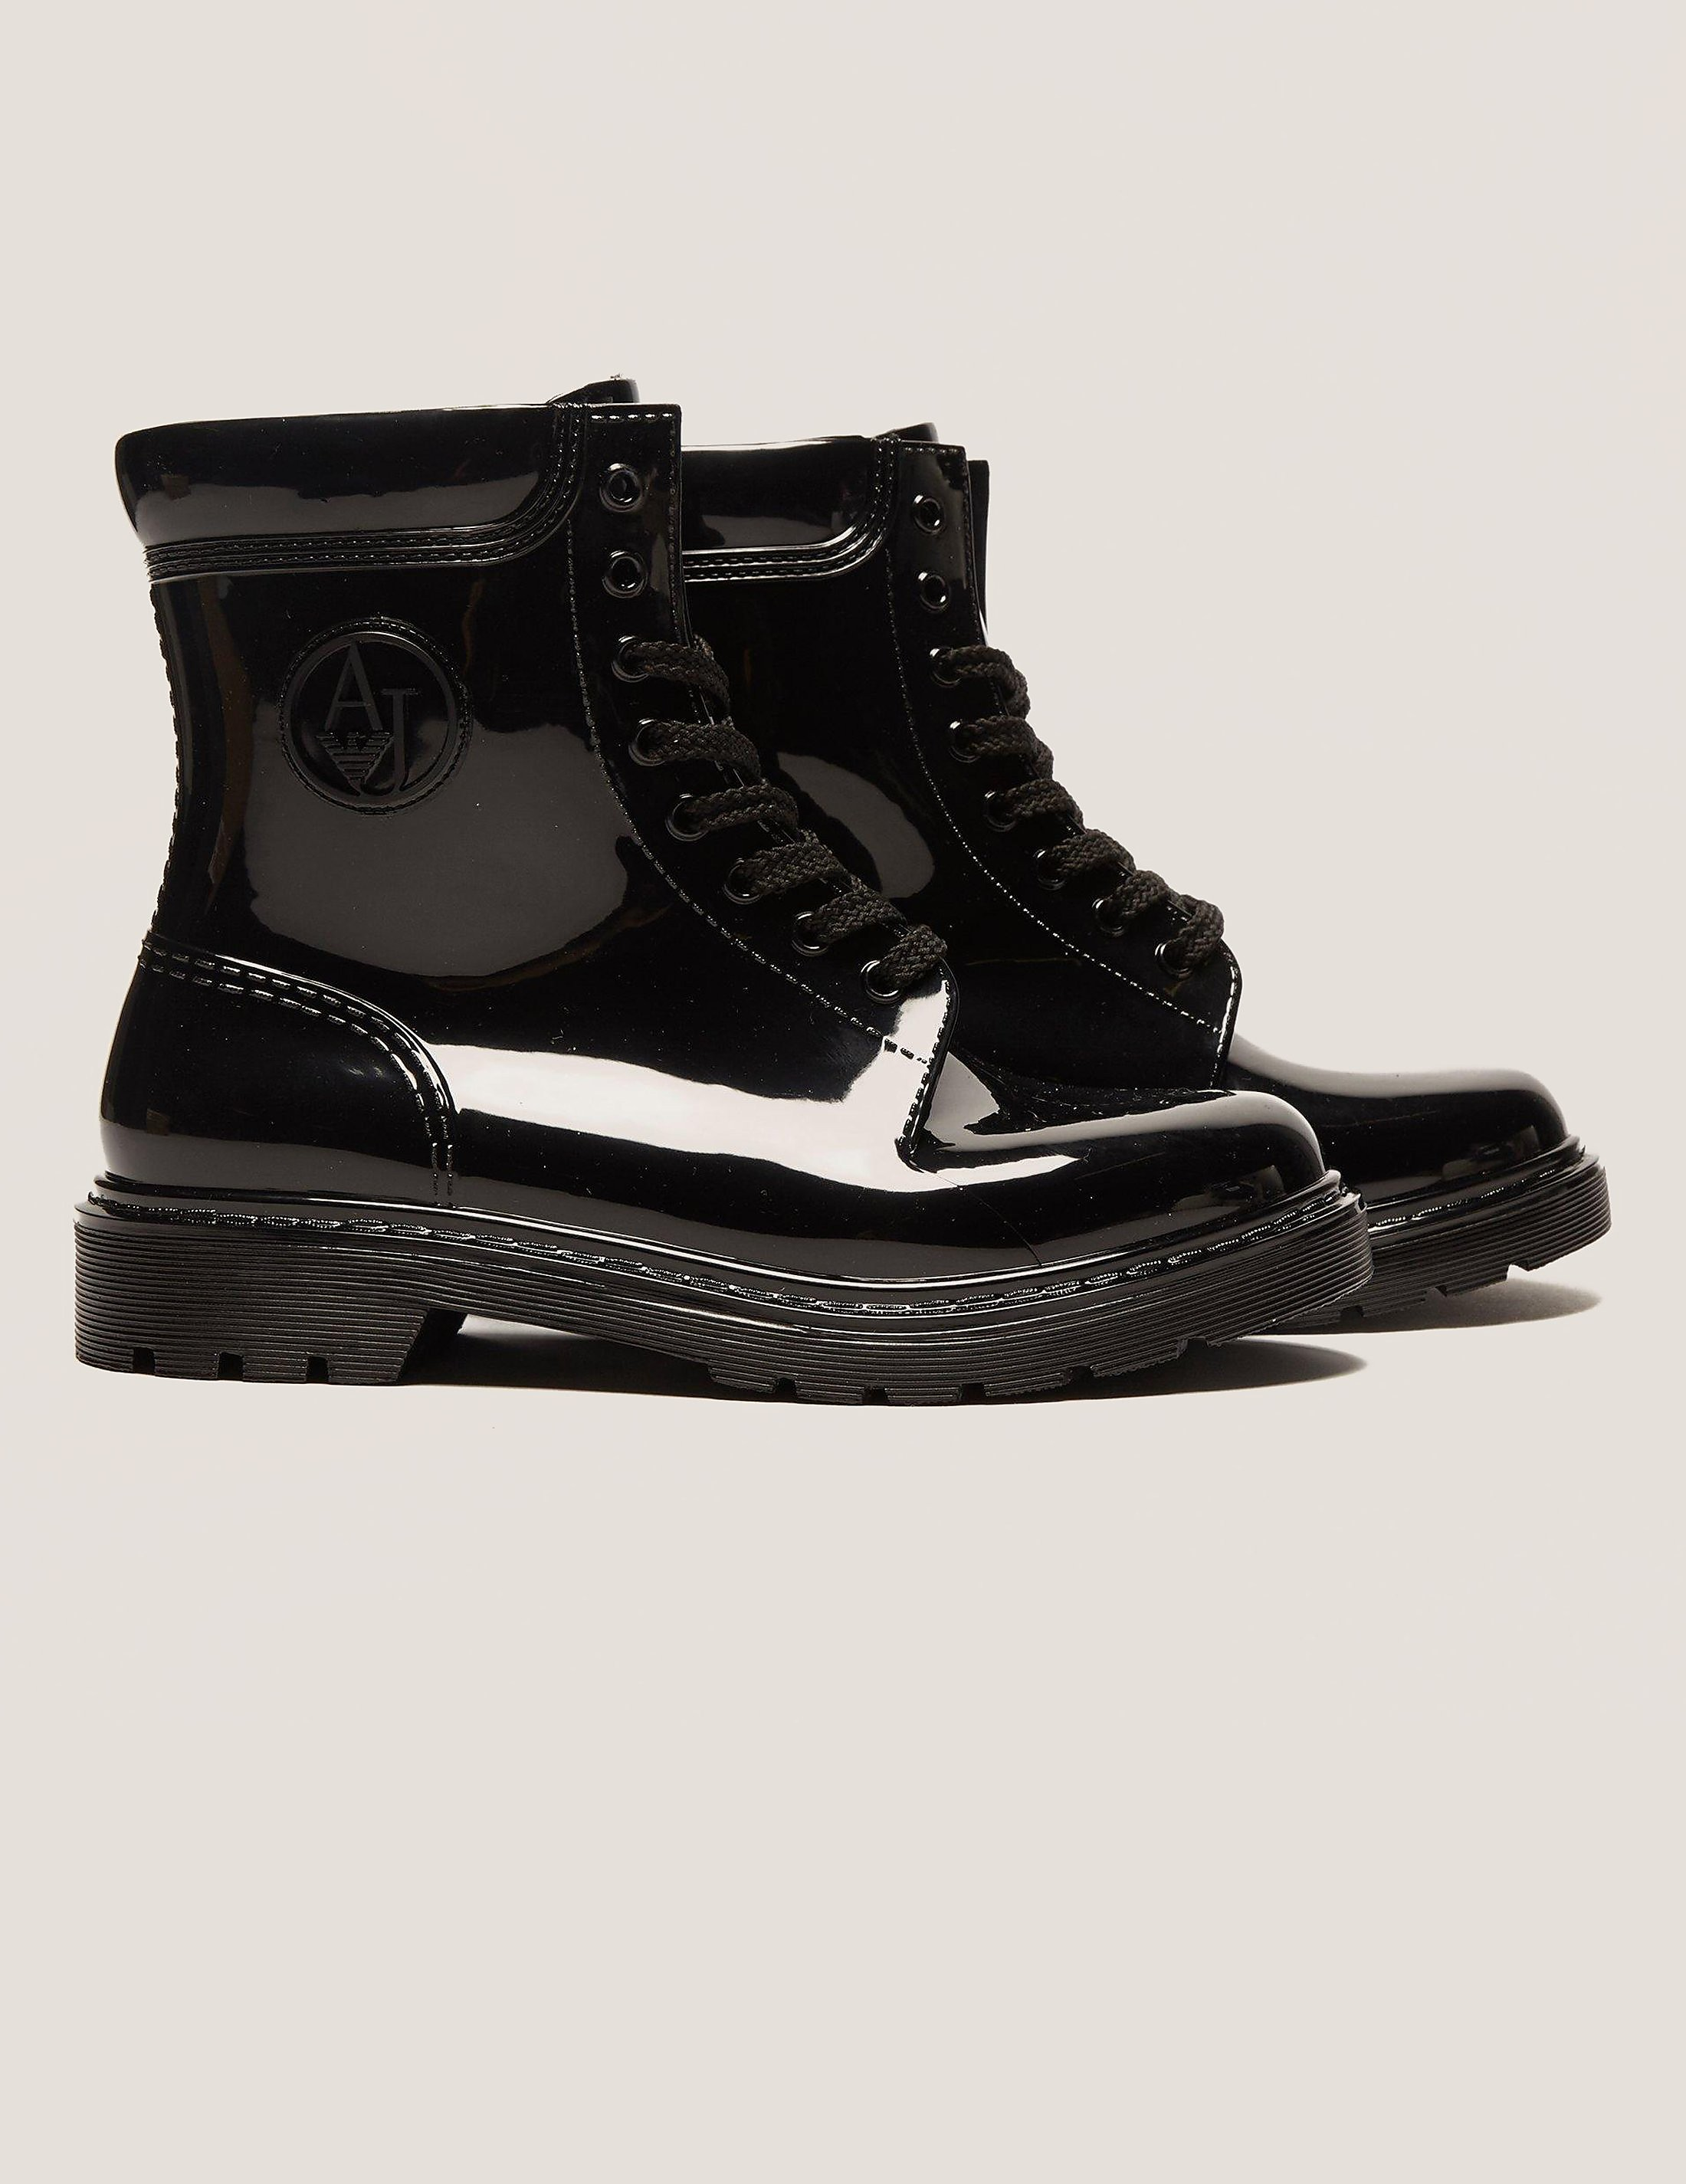 Armani Jeans PVC AJ Lace Up Boot